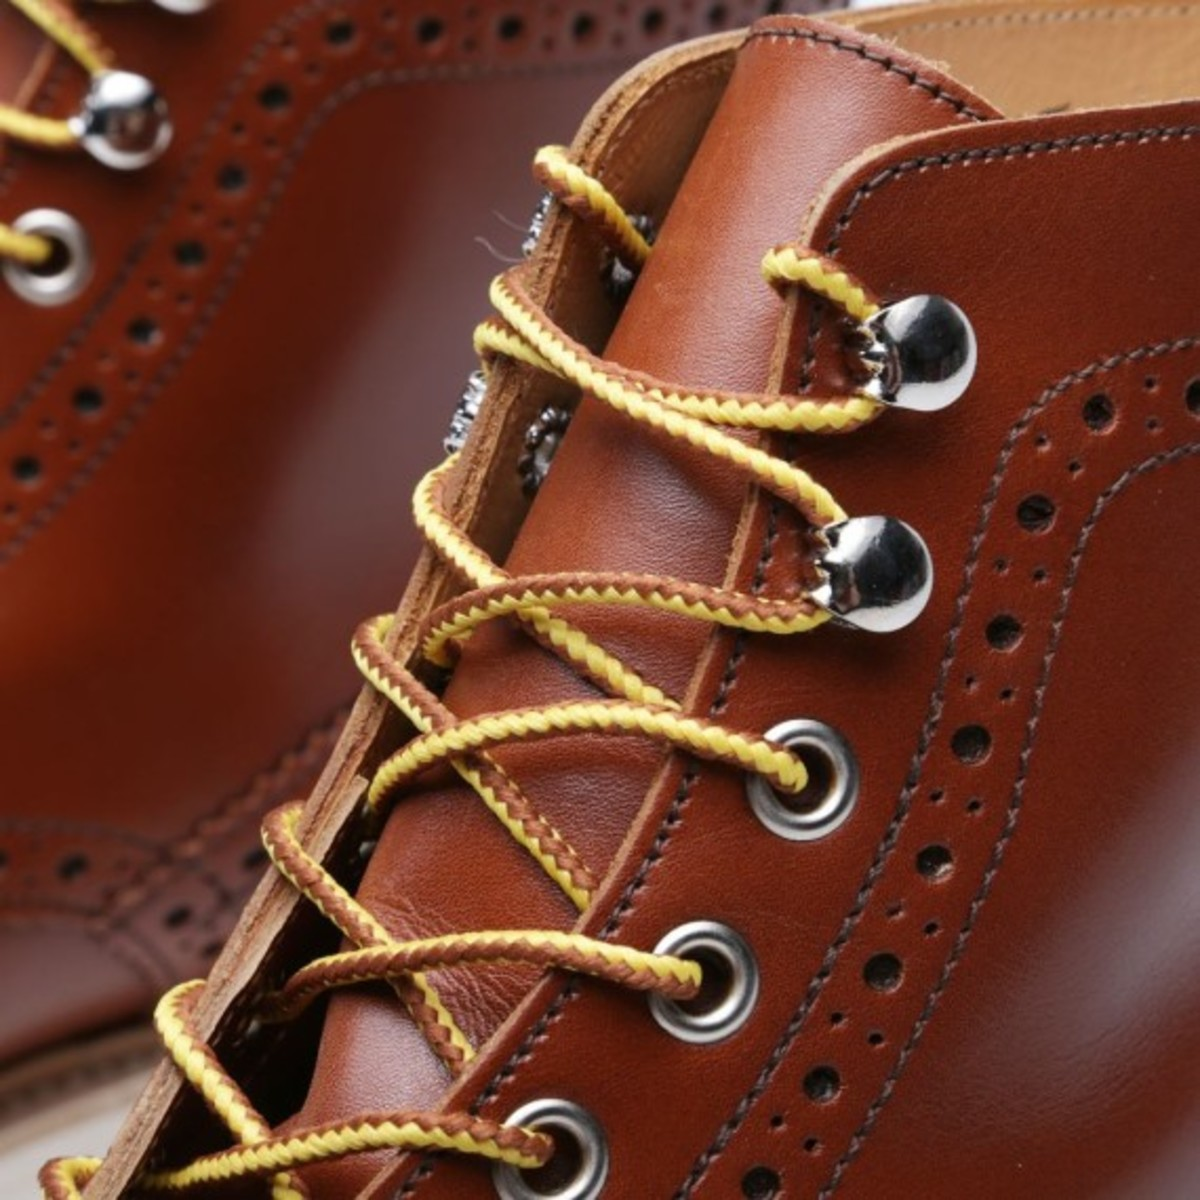 end-trickers-stow-brogue-boot-spring-2014-26